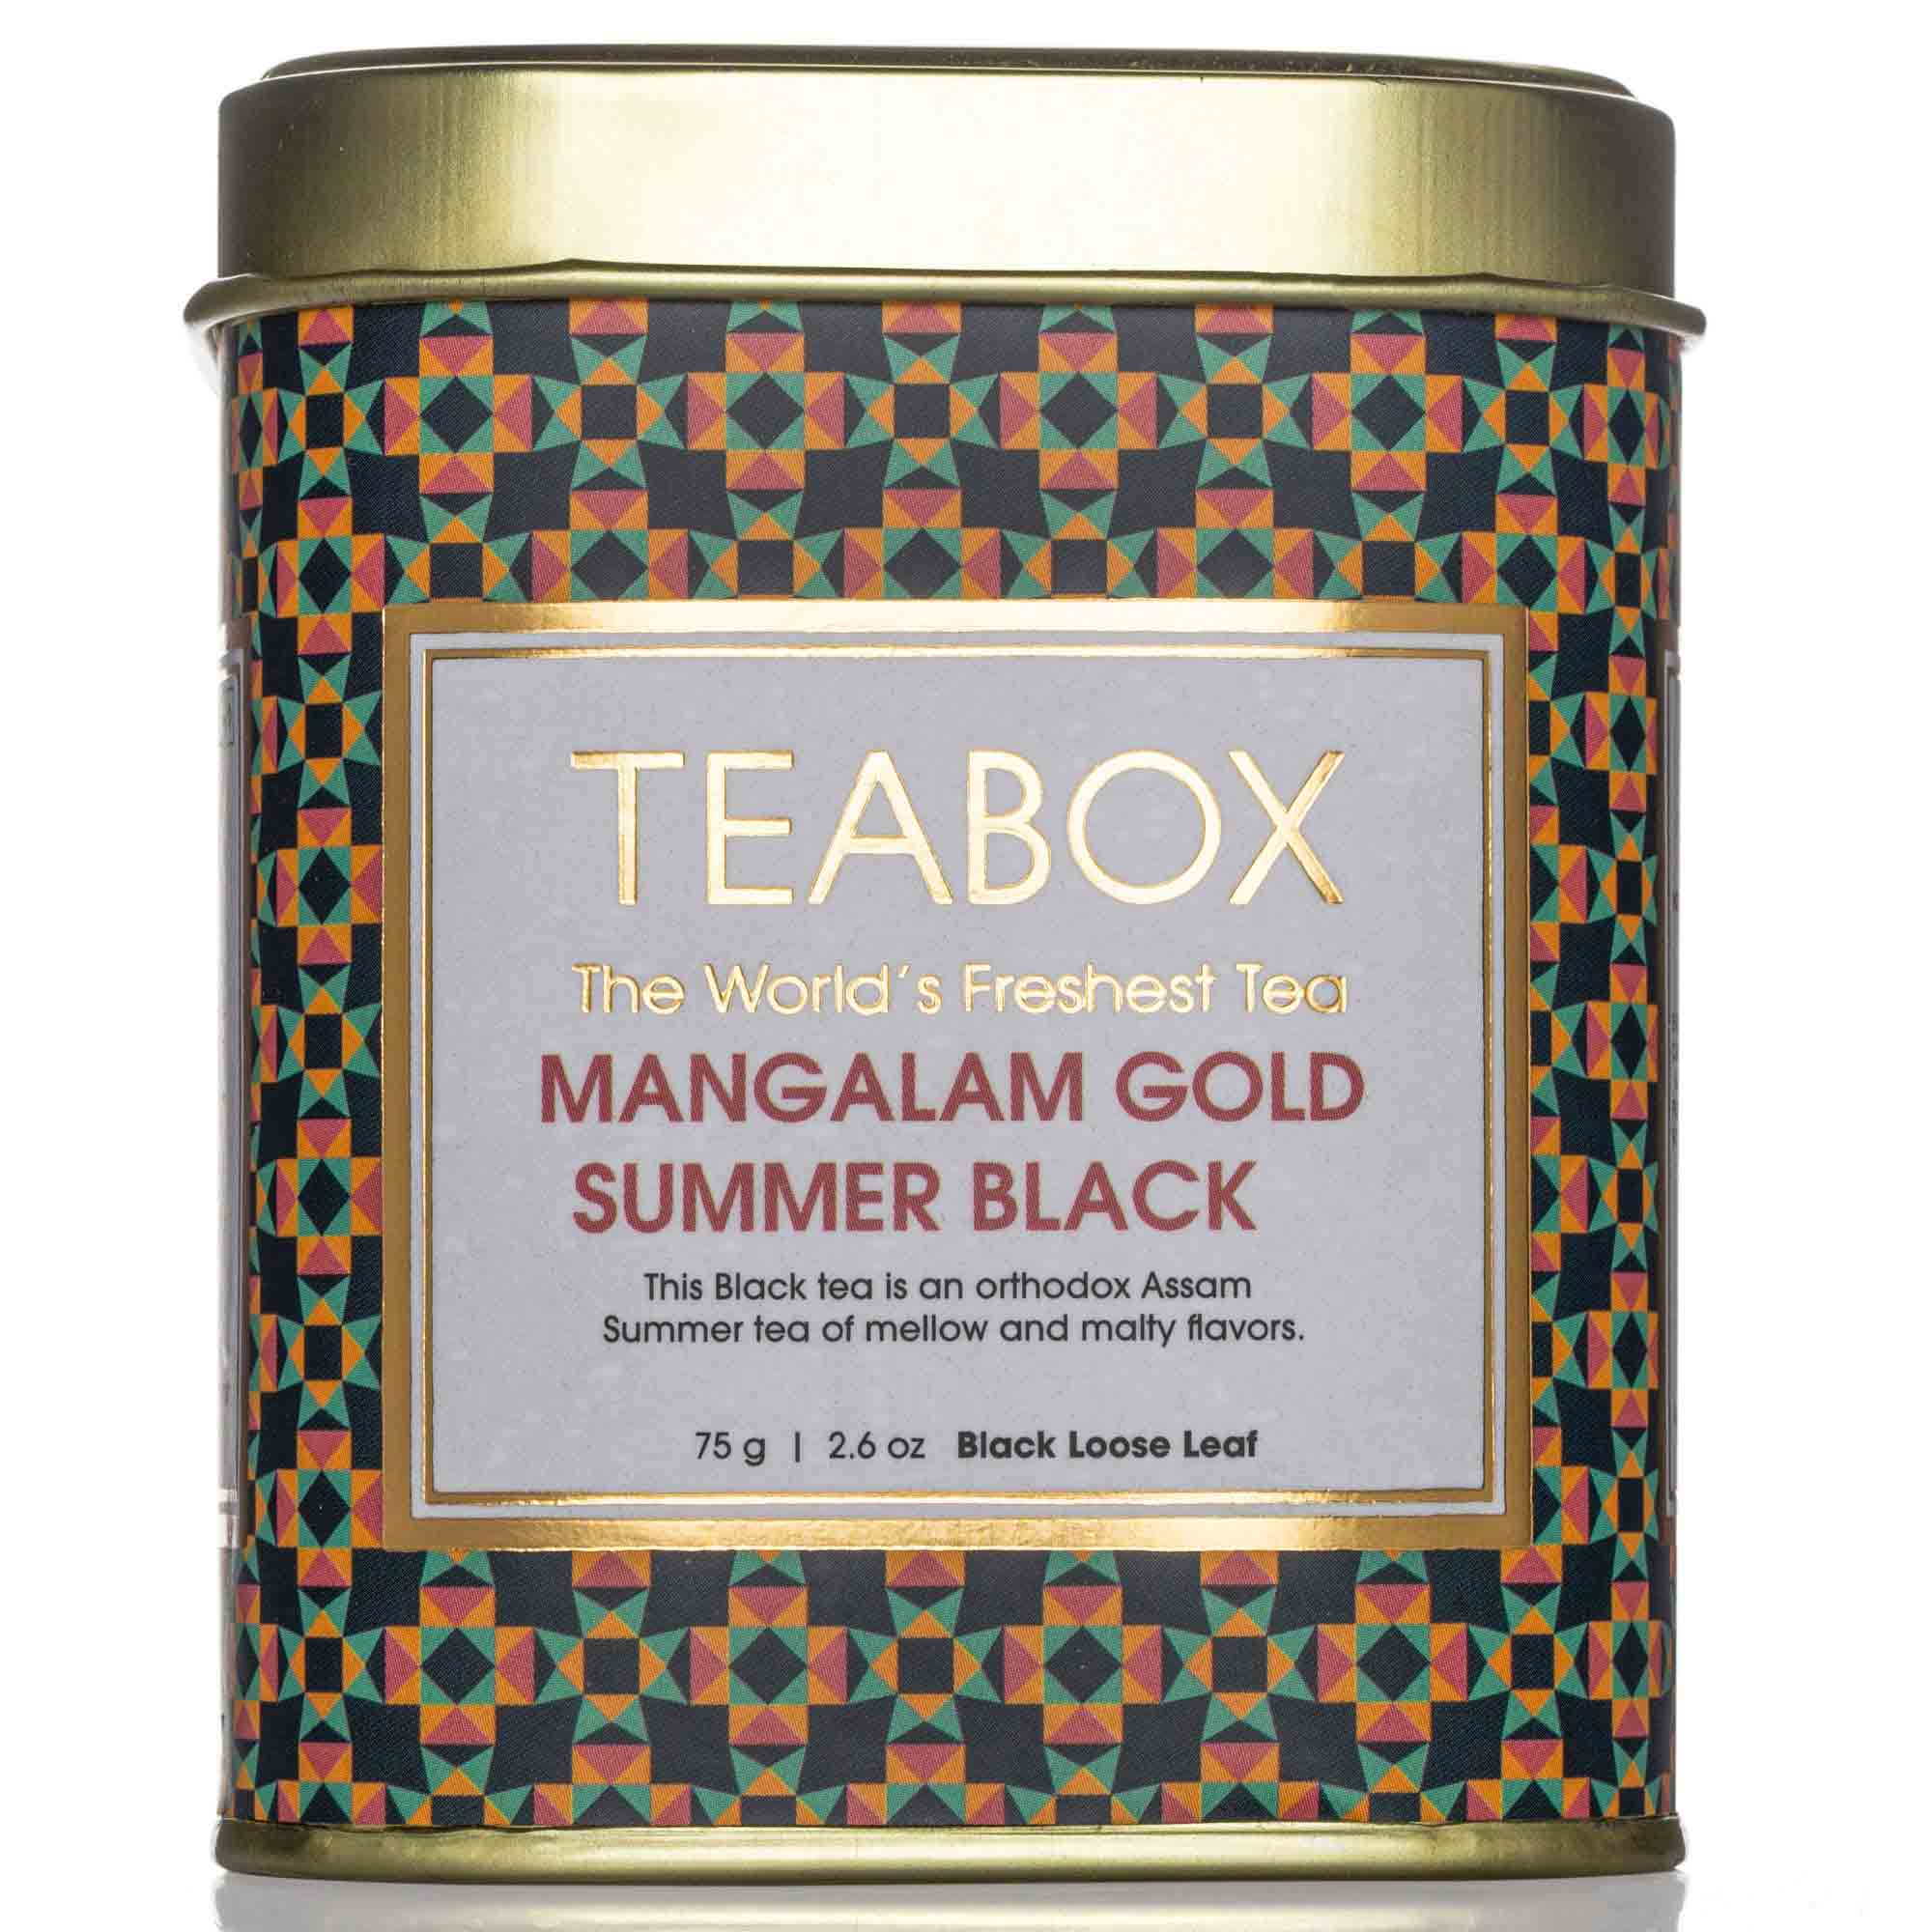 Mangalam Gold Summer Black Tin